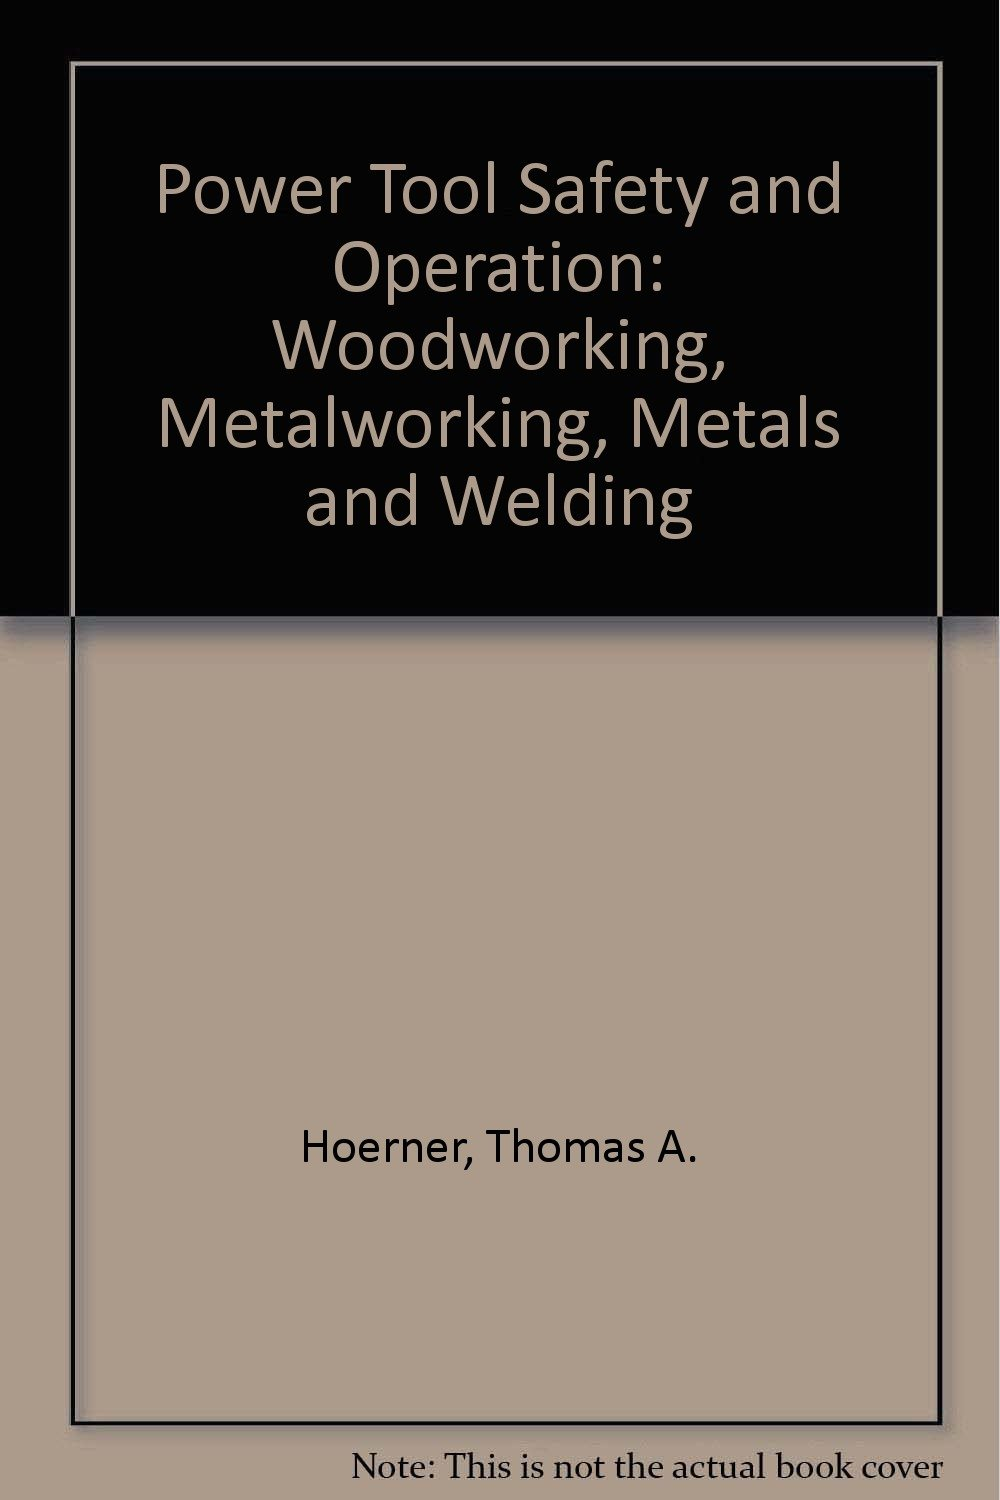 Power Tool Safety and Operation: Woodworking, Metalworking, Metals and Welding